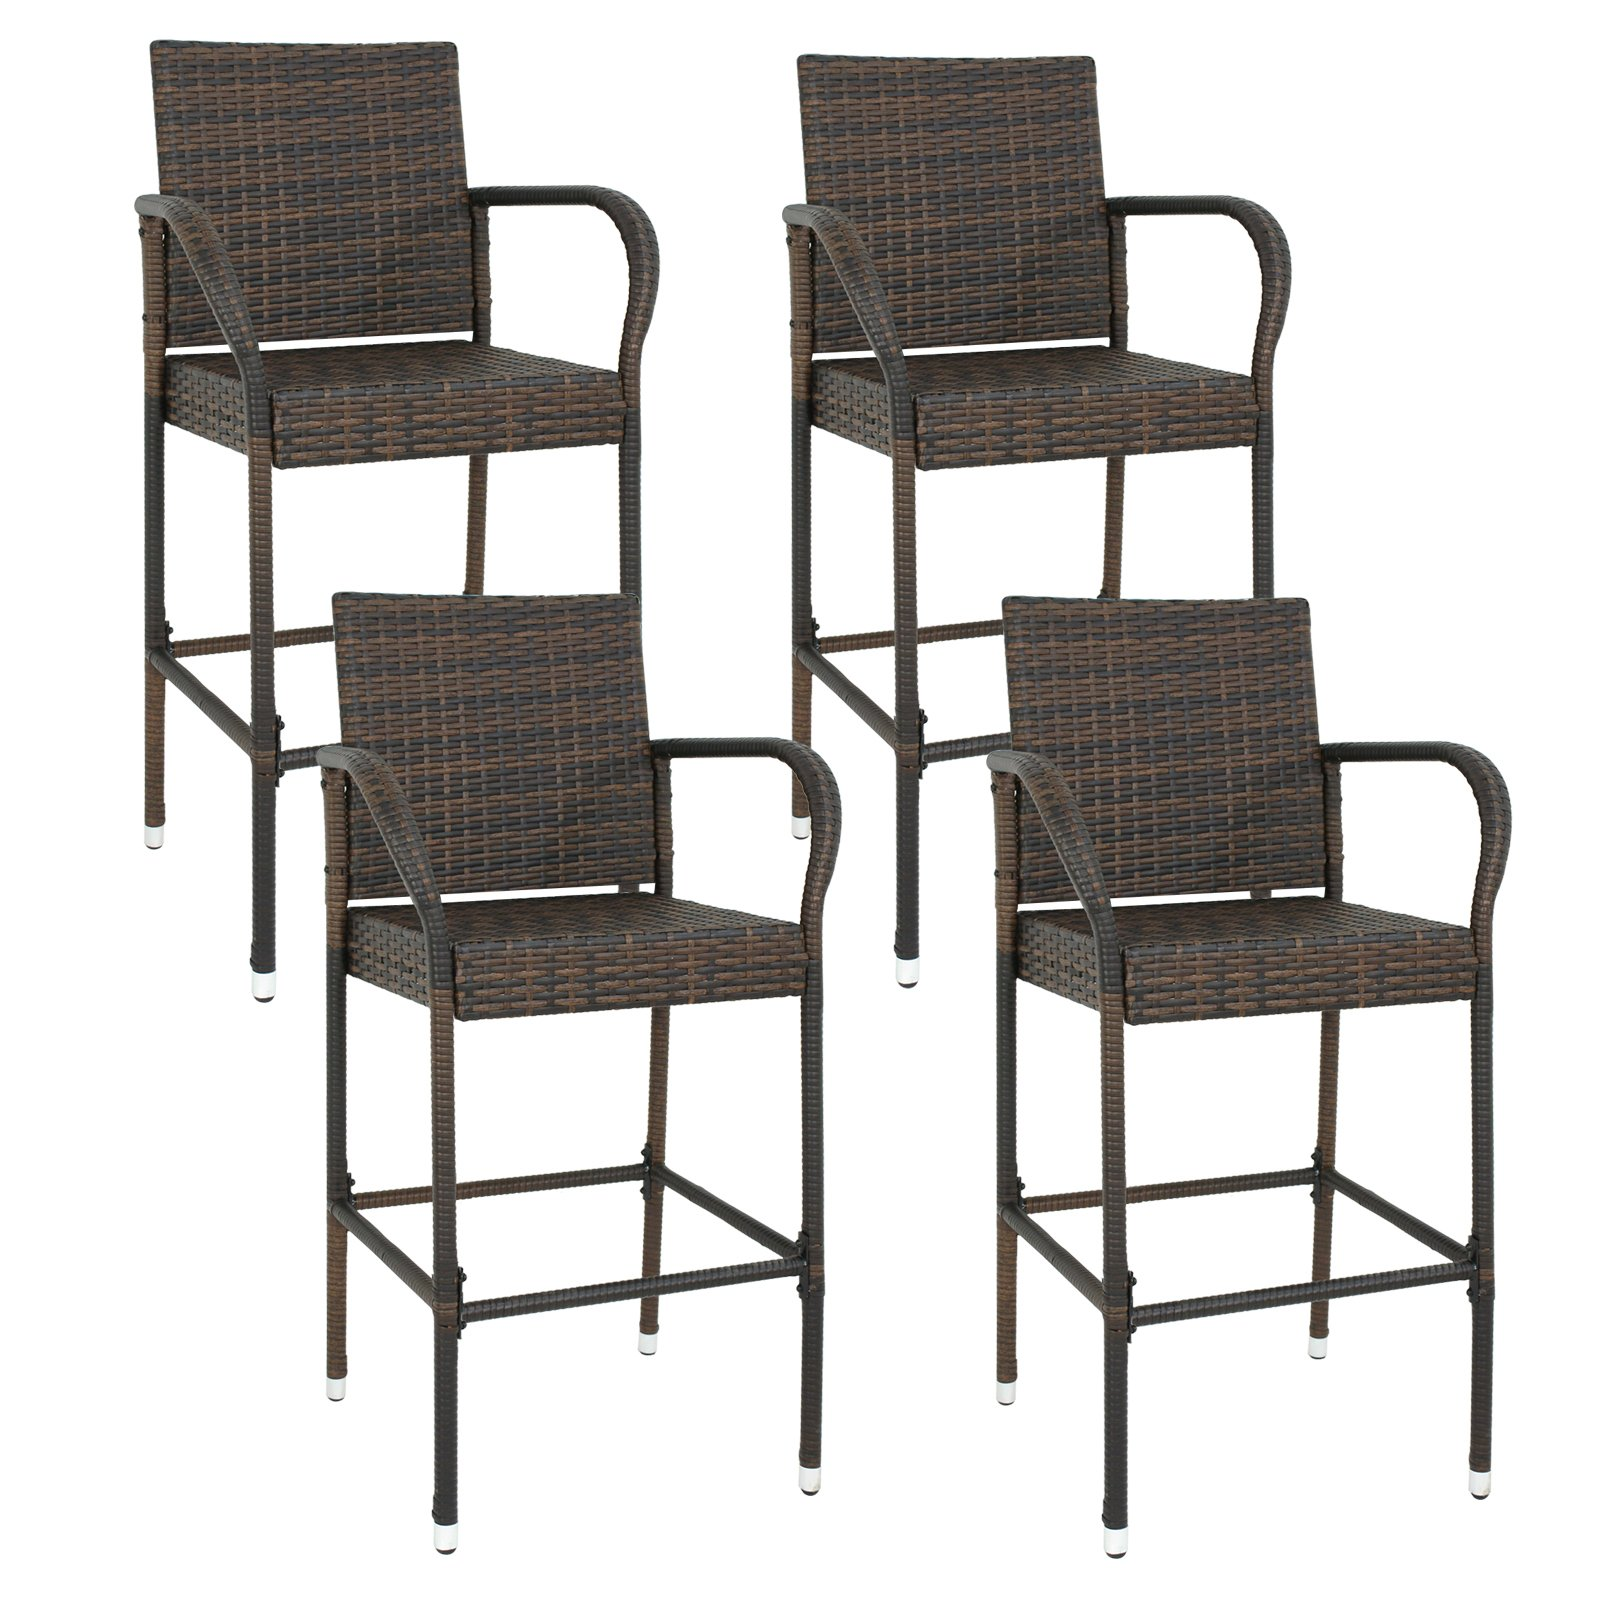 Nova Microdermabrasion Outdoor Wicker Barstool Backyard Chair Patio Rattan Chair with Armrest – 4pcs